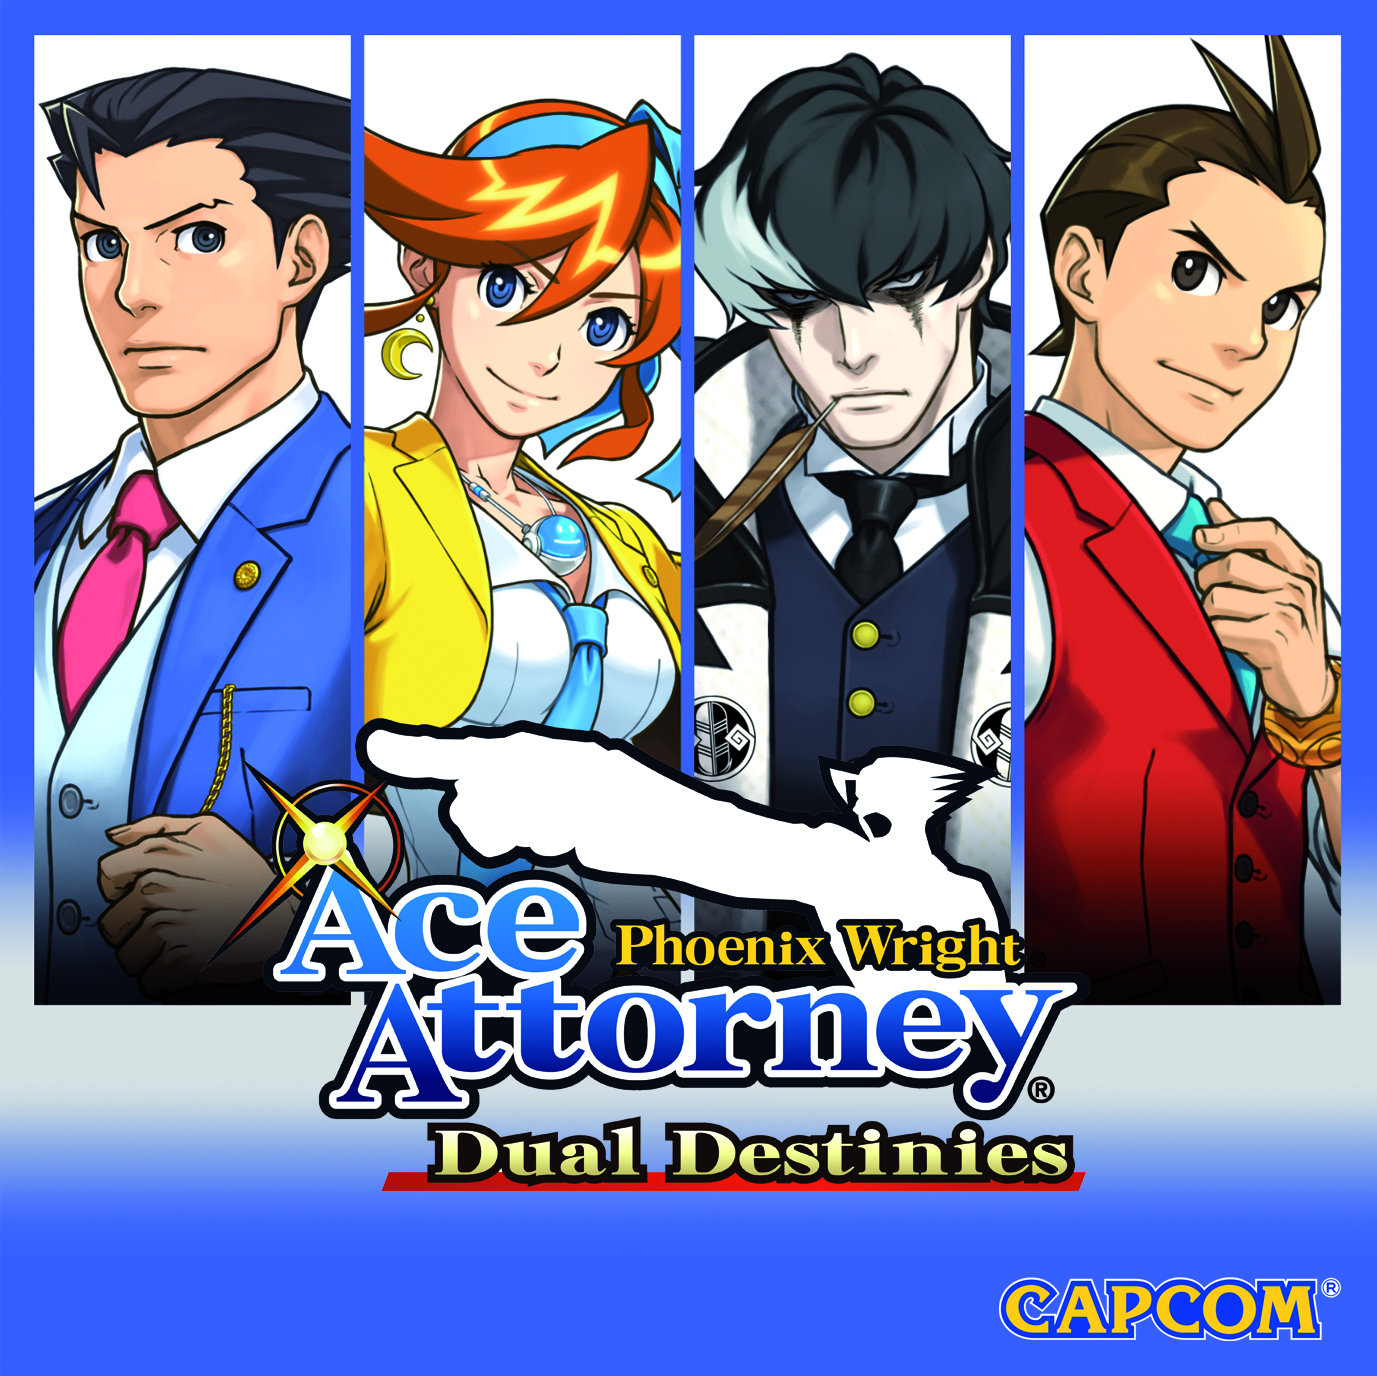 Phoenix wright ace attorney dual destinies 3ds nerd bacon reviews